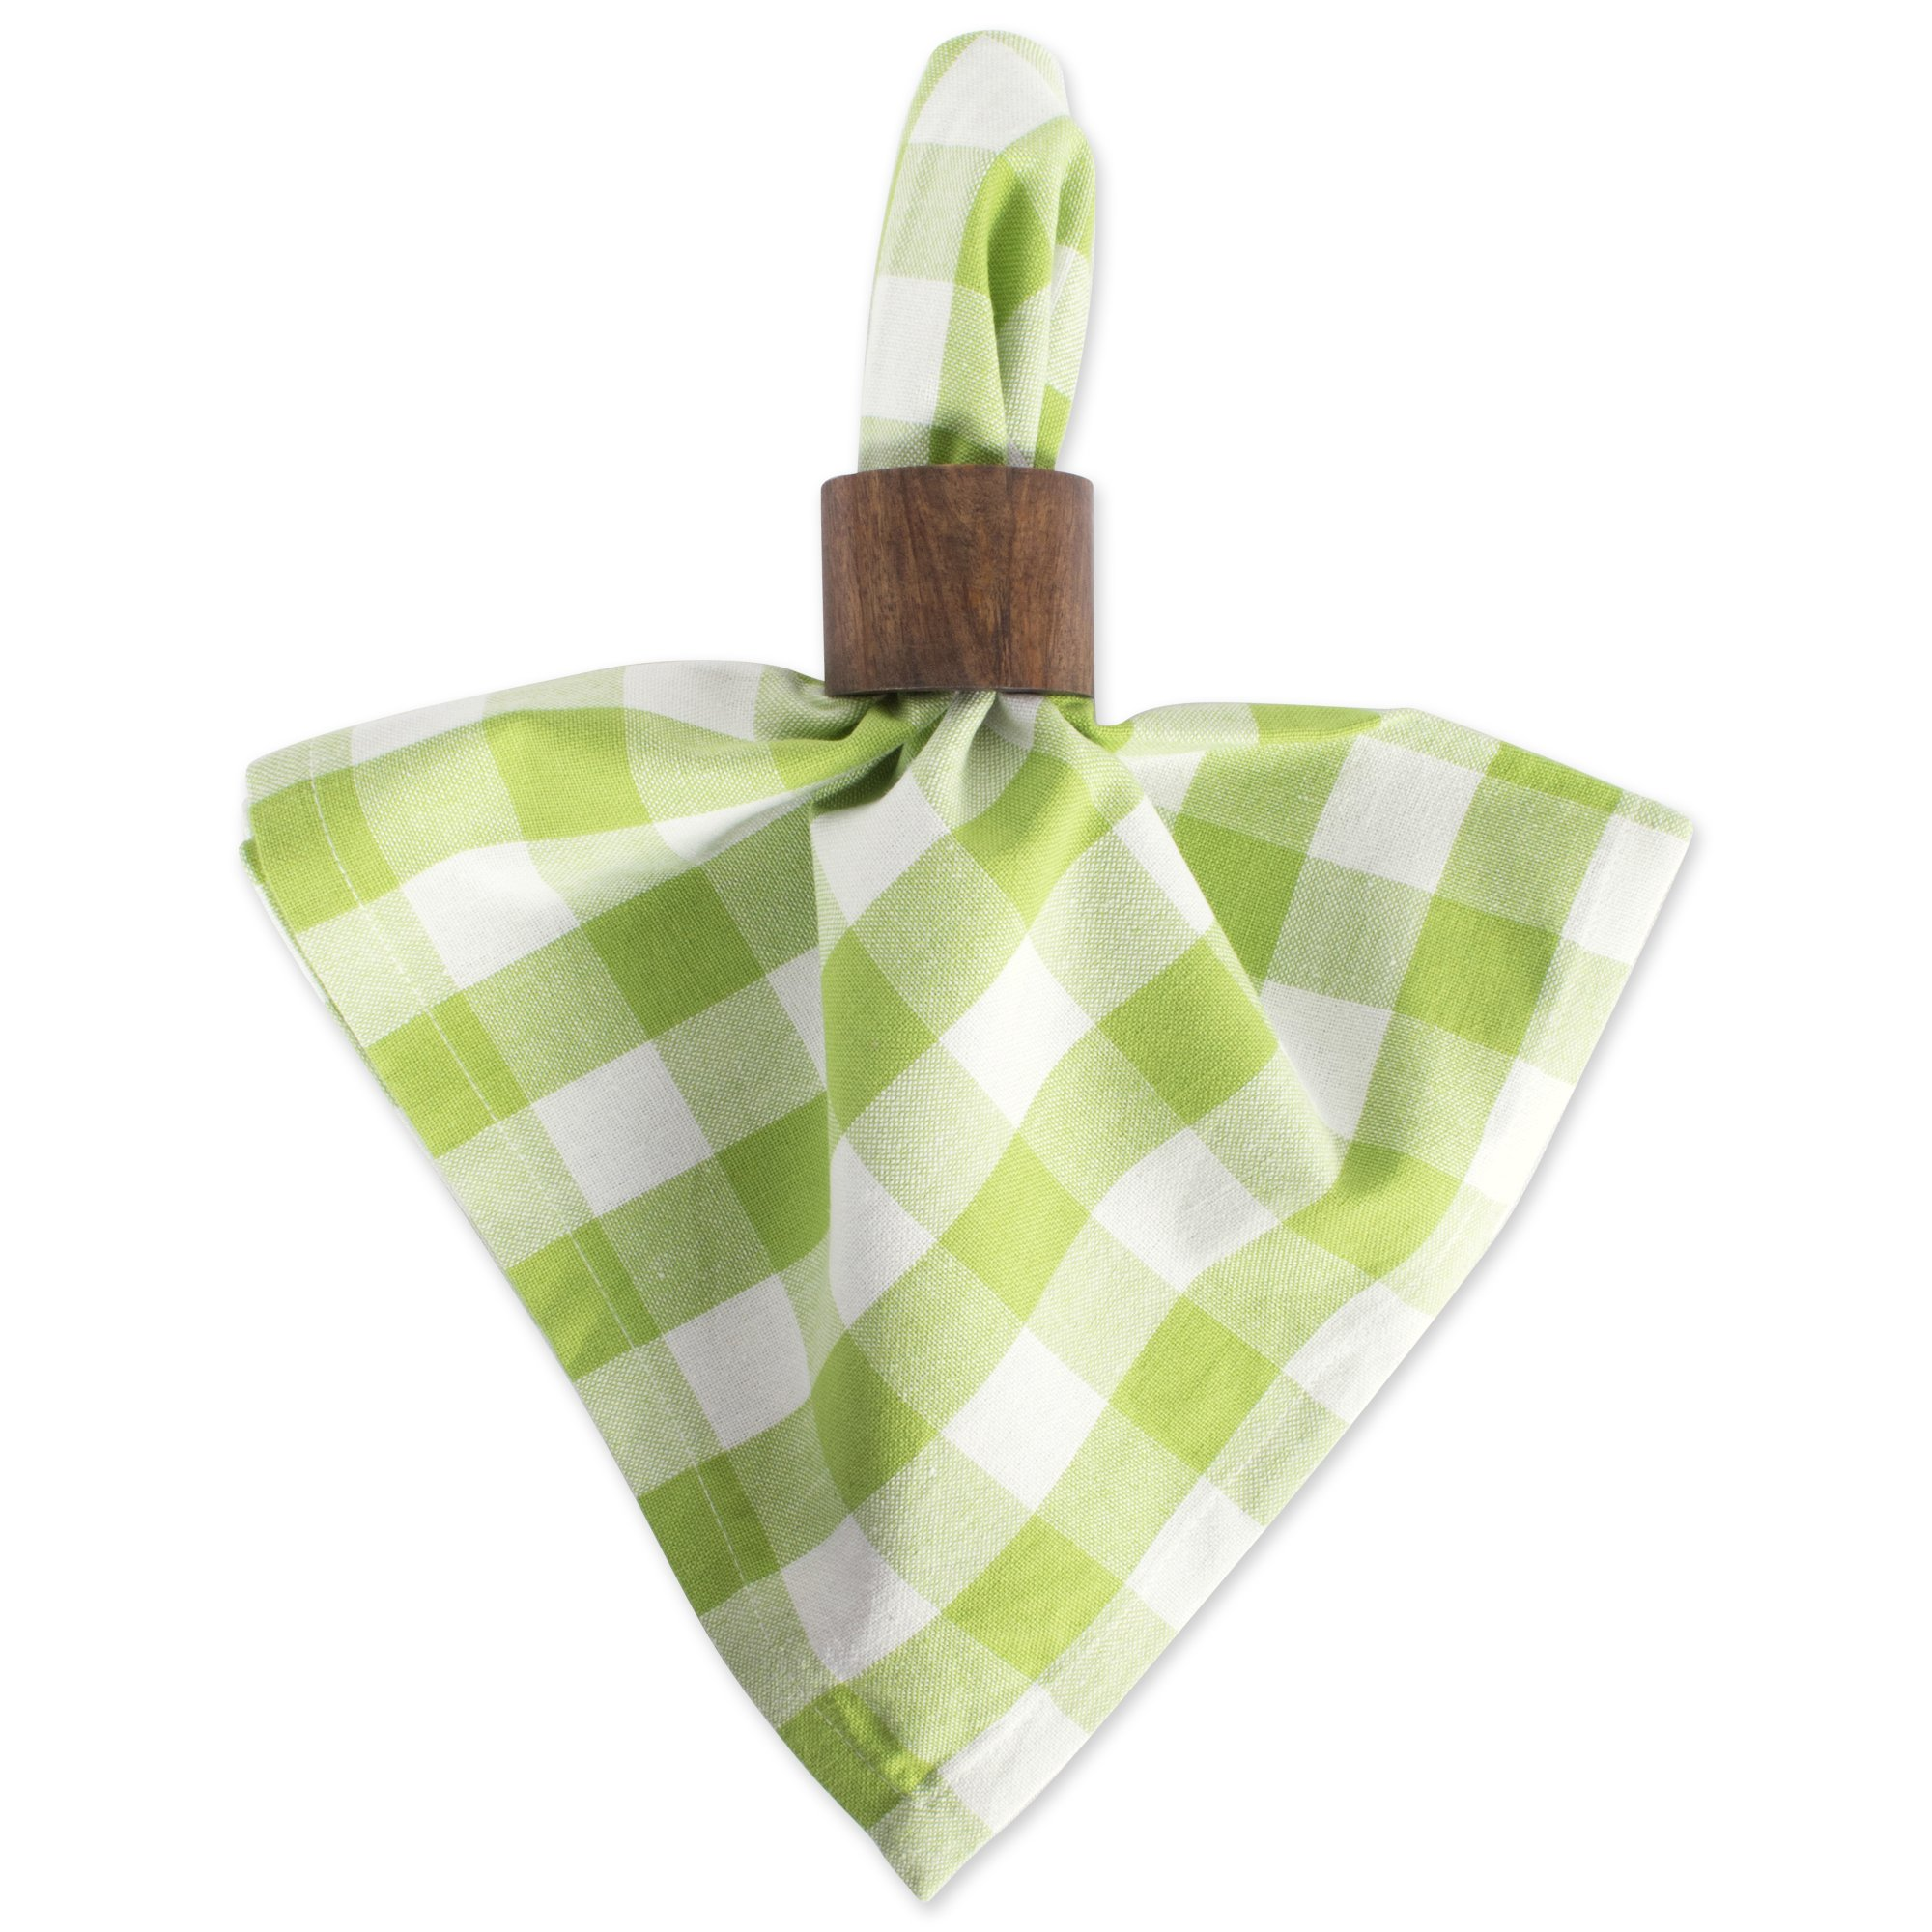 DII 100% Cotton, Oversized Basic Everyday 20x 20 Napkin, Set of 6, Green Apple Check by DII (Image #5)